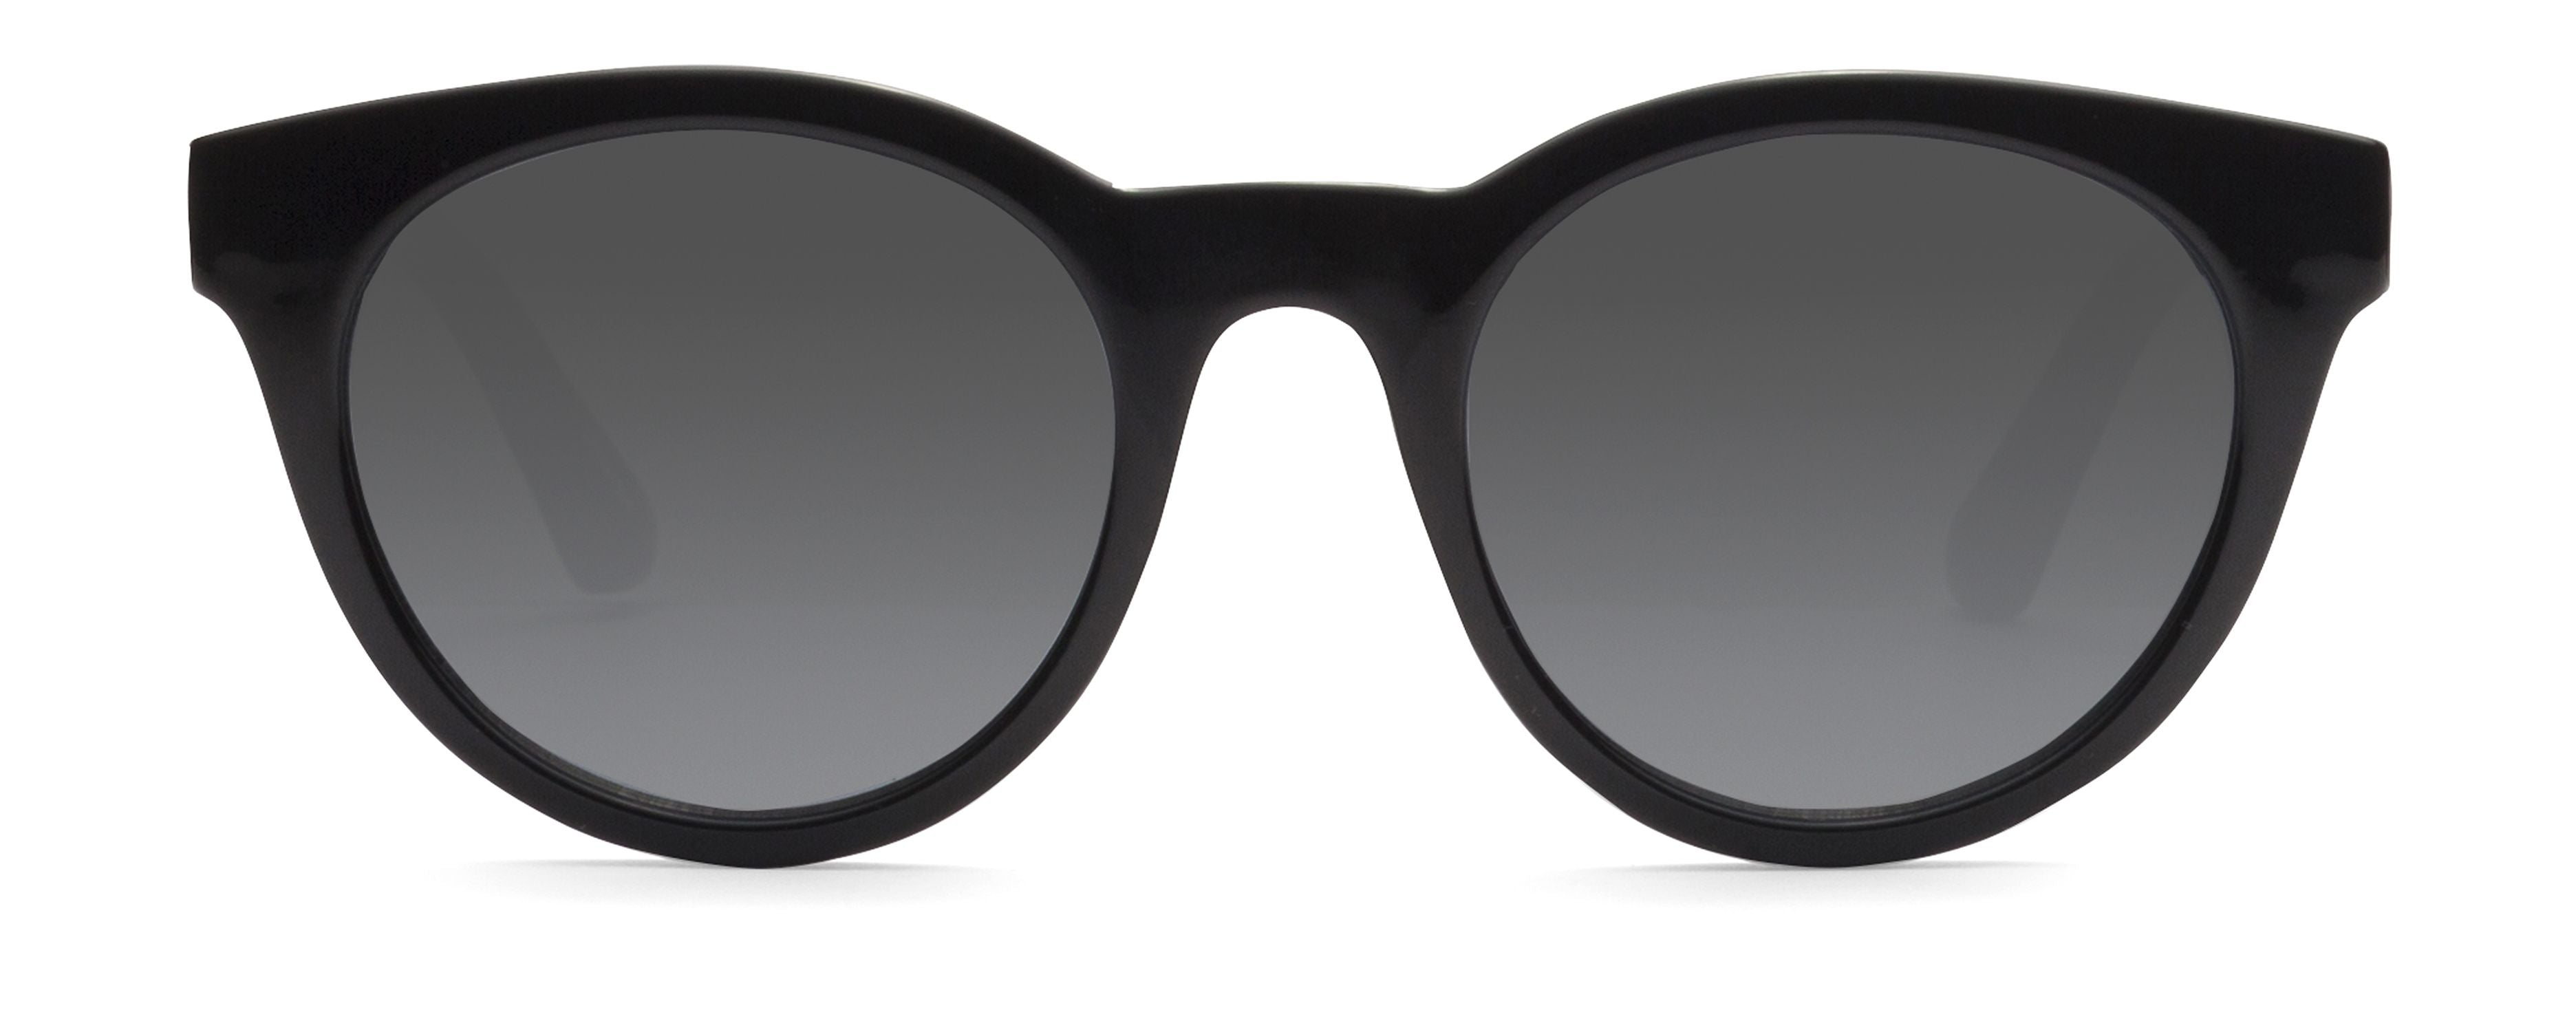 FIZZ Black JUNiA Kids Sunglasses